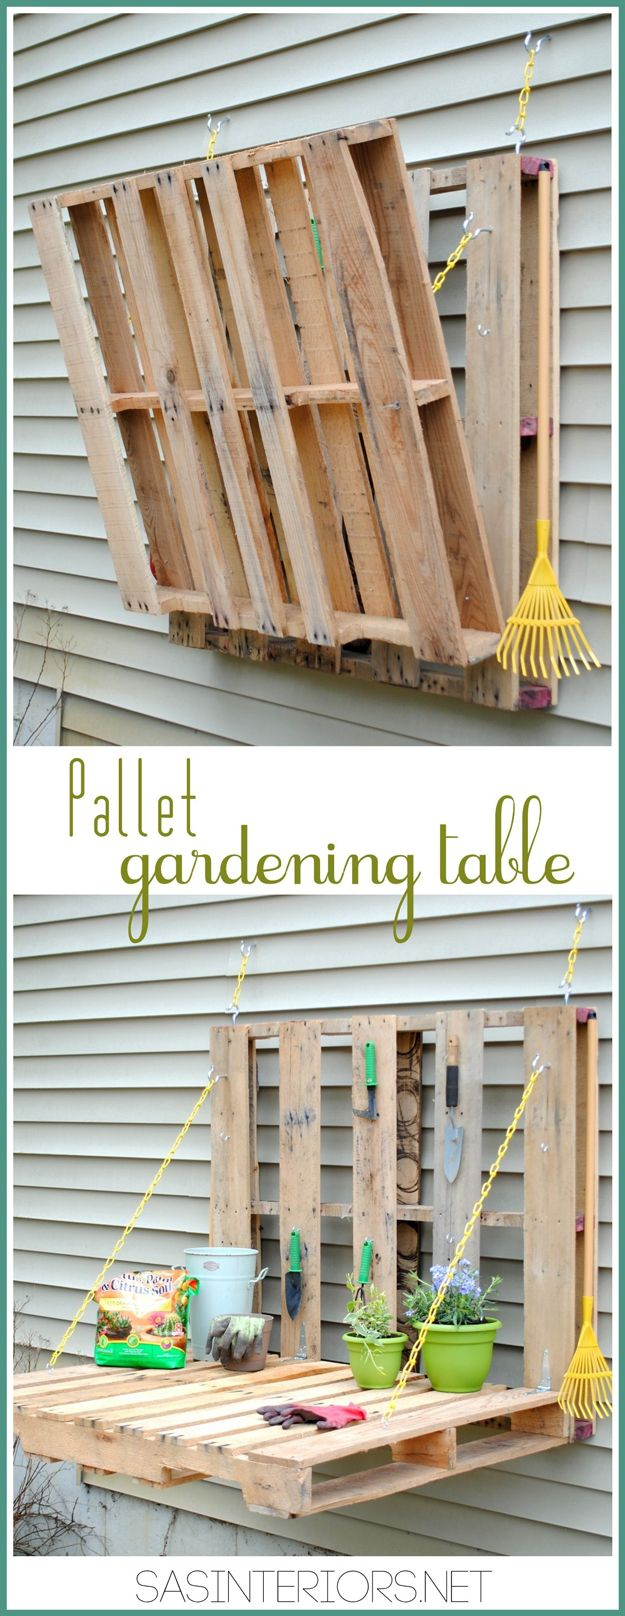 349 best diy pallets upcycle ideas images on pinterest pallet 349 best diy pallets upcycle ideas images on pinterest pallet ideas pallet designs and pallet projects solutioingenieria Choice Image